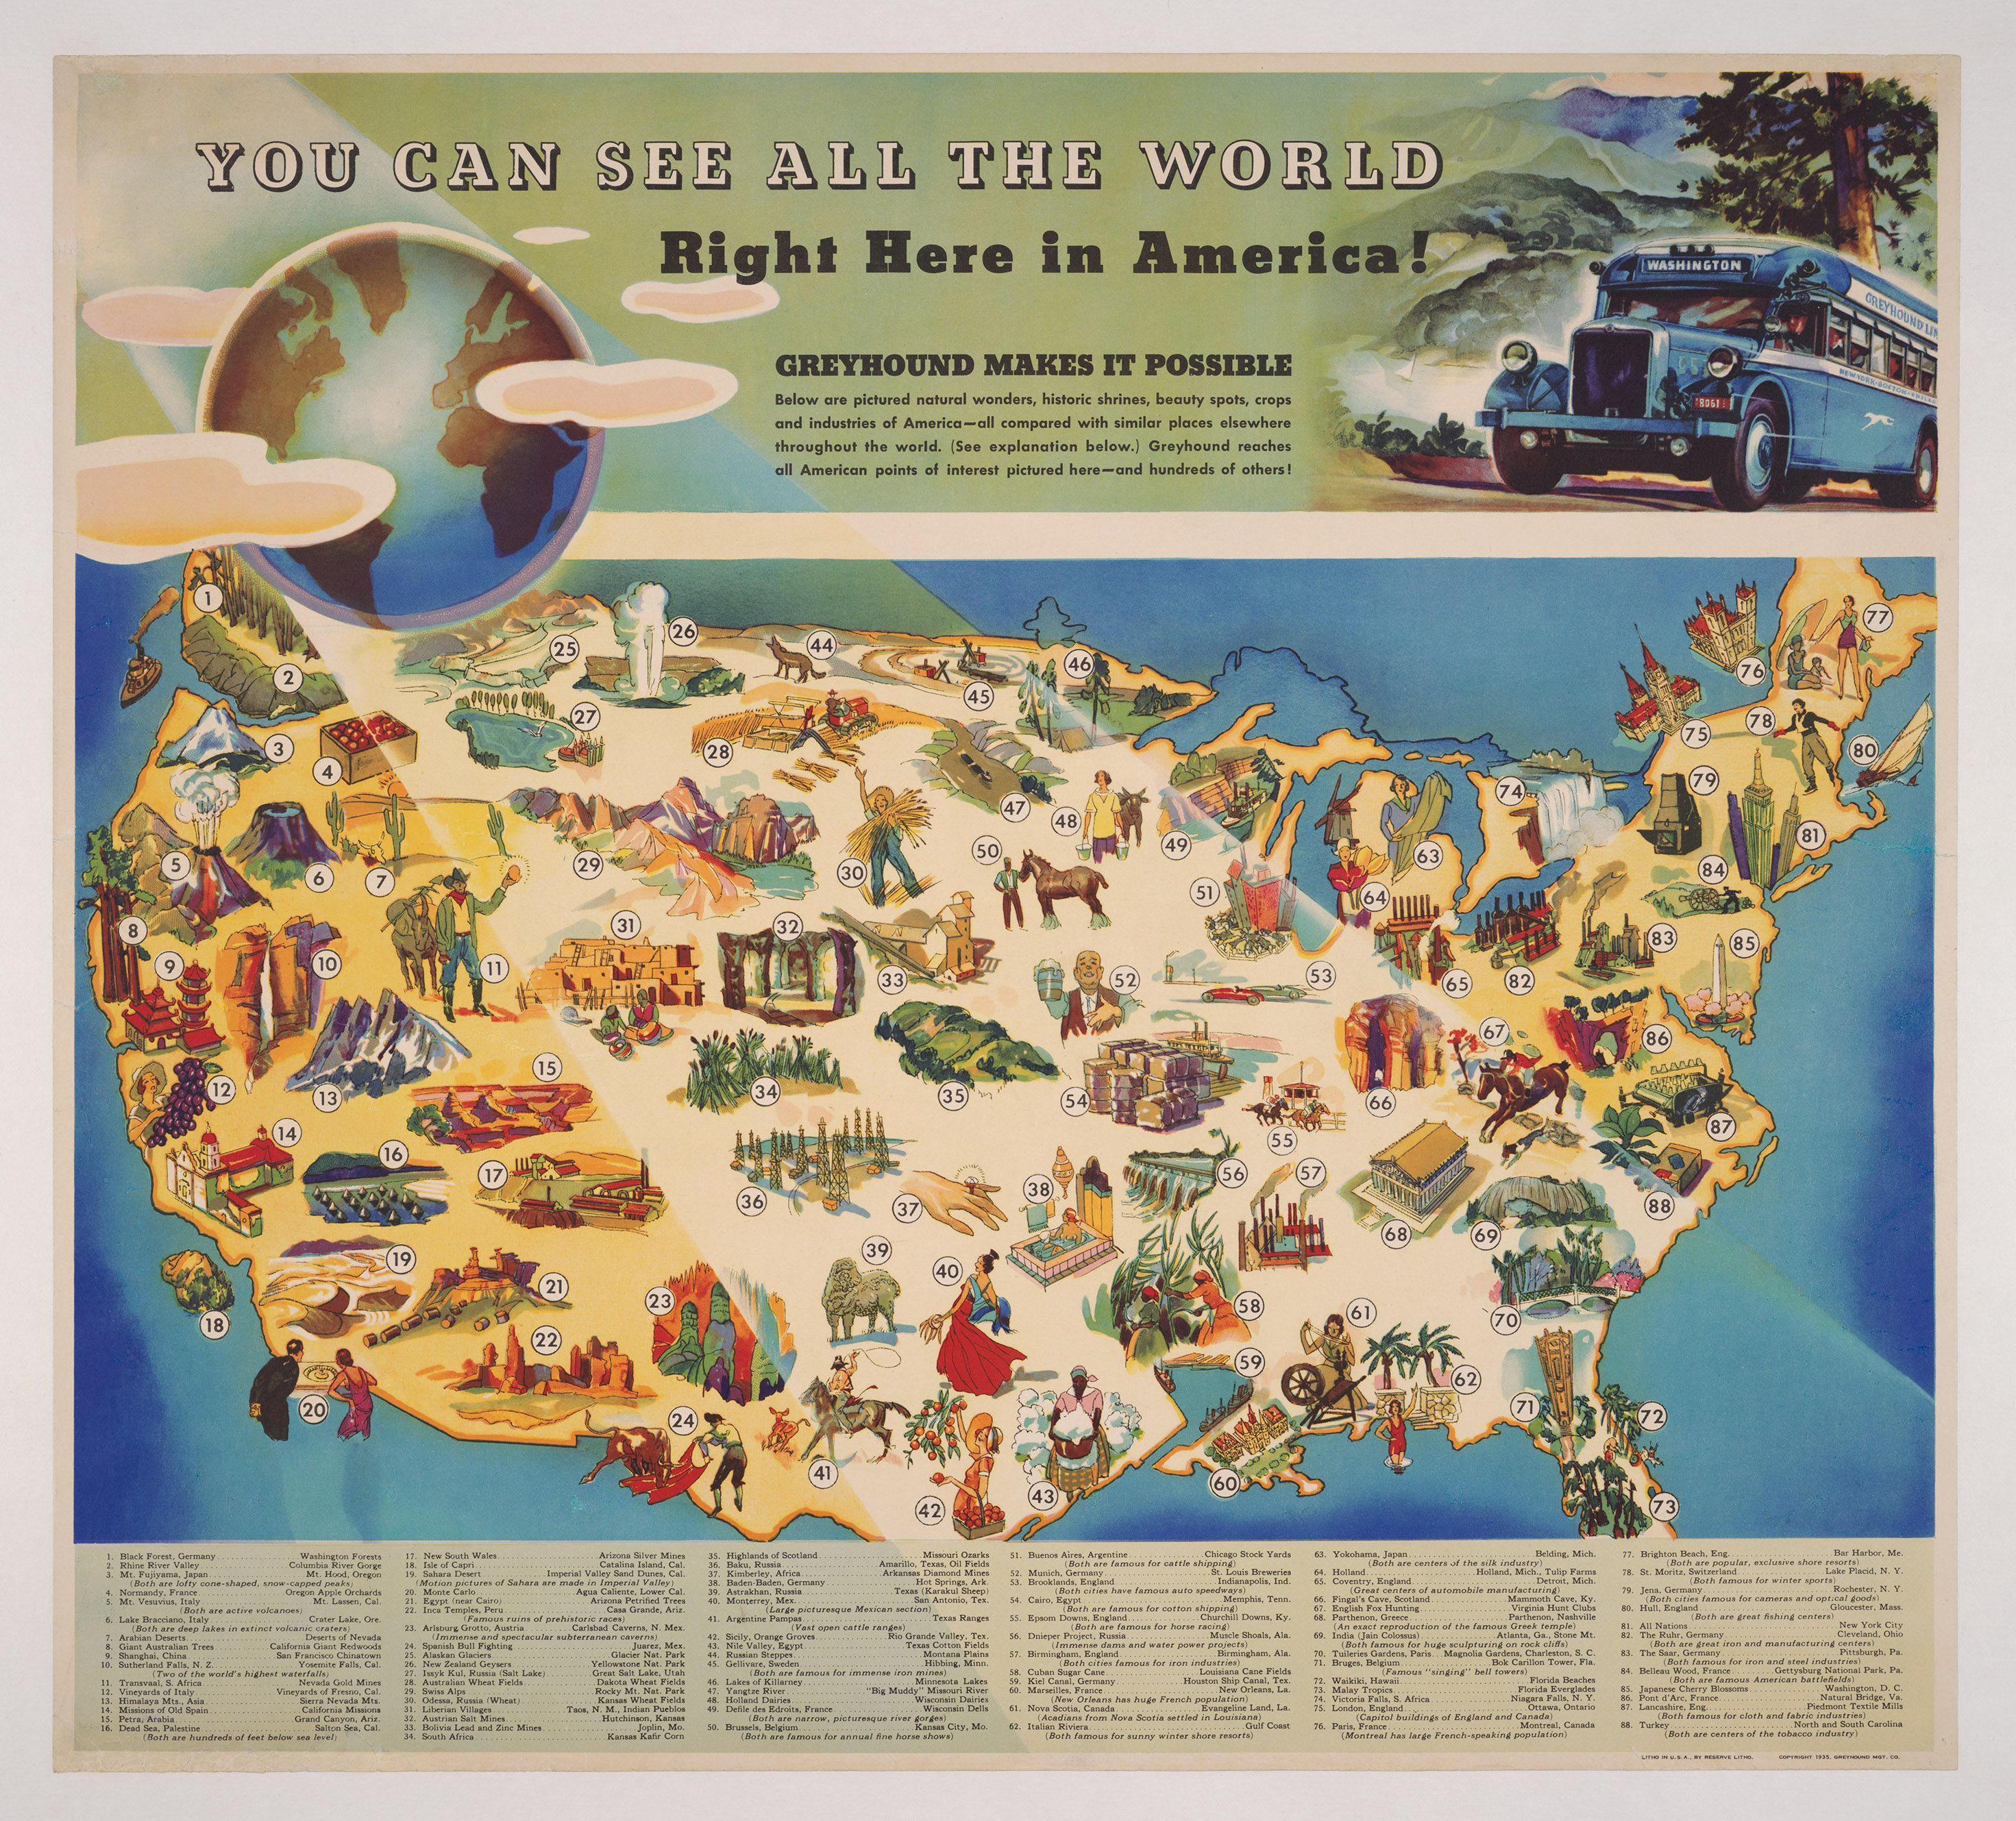 You can see all the world right here in america 1935 map usa you can see all the world right here in america a map from 1935 which compares some of the most famous places around the world with similar locations in gumiabroncs Gallery